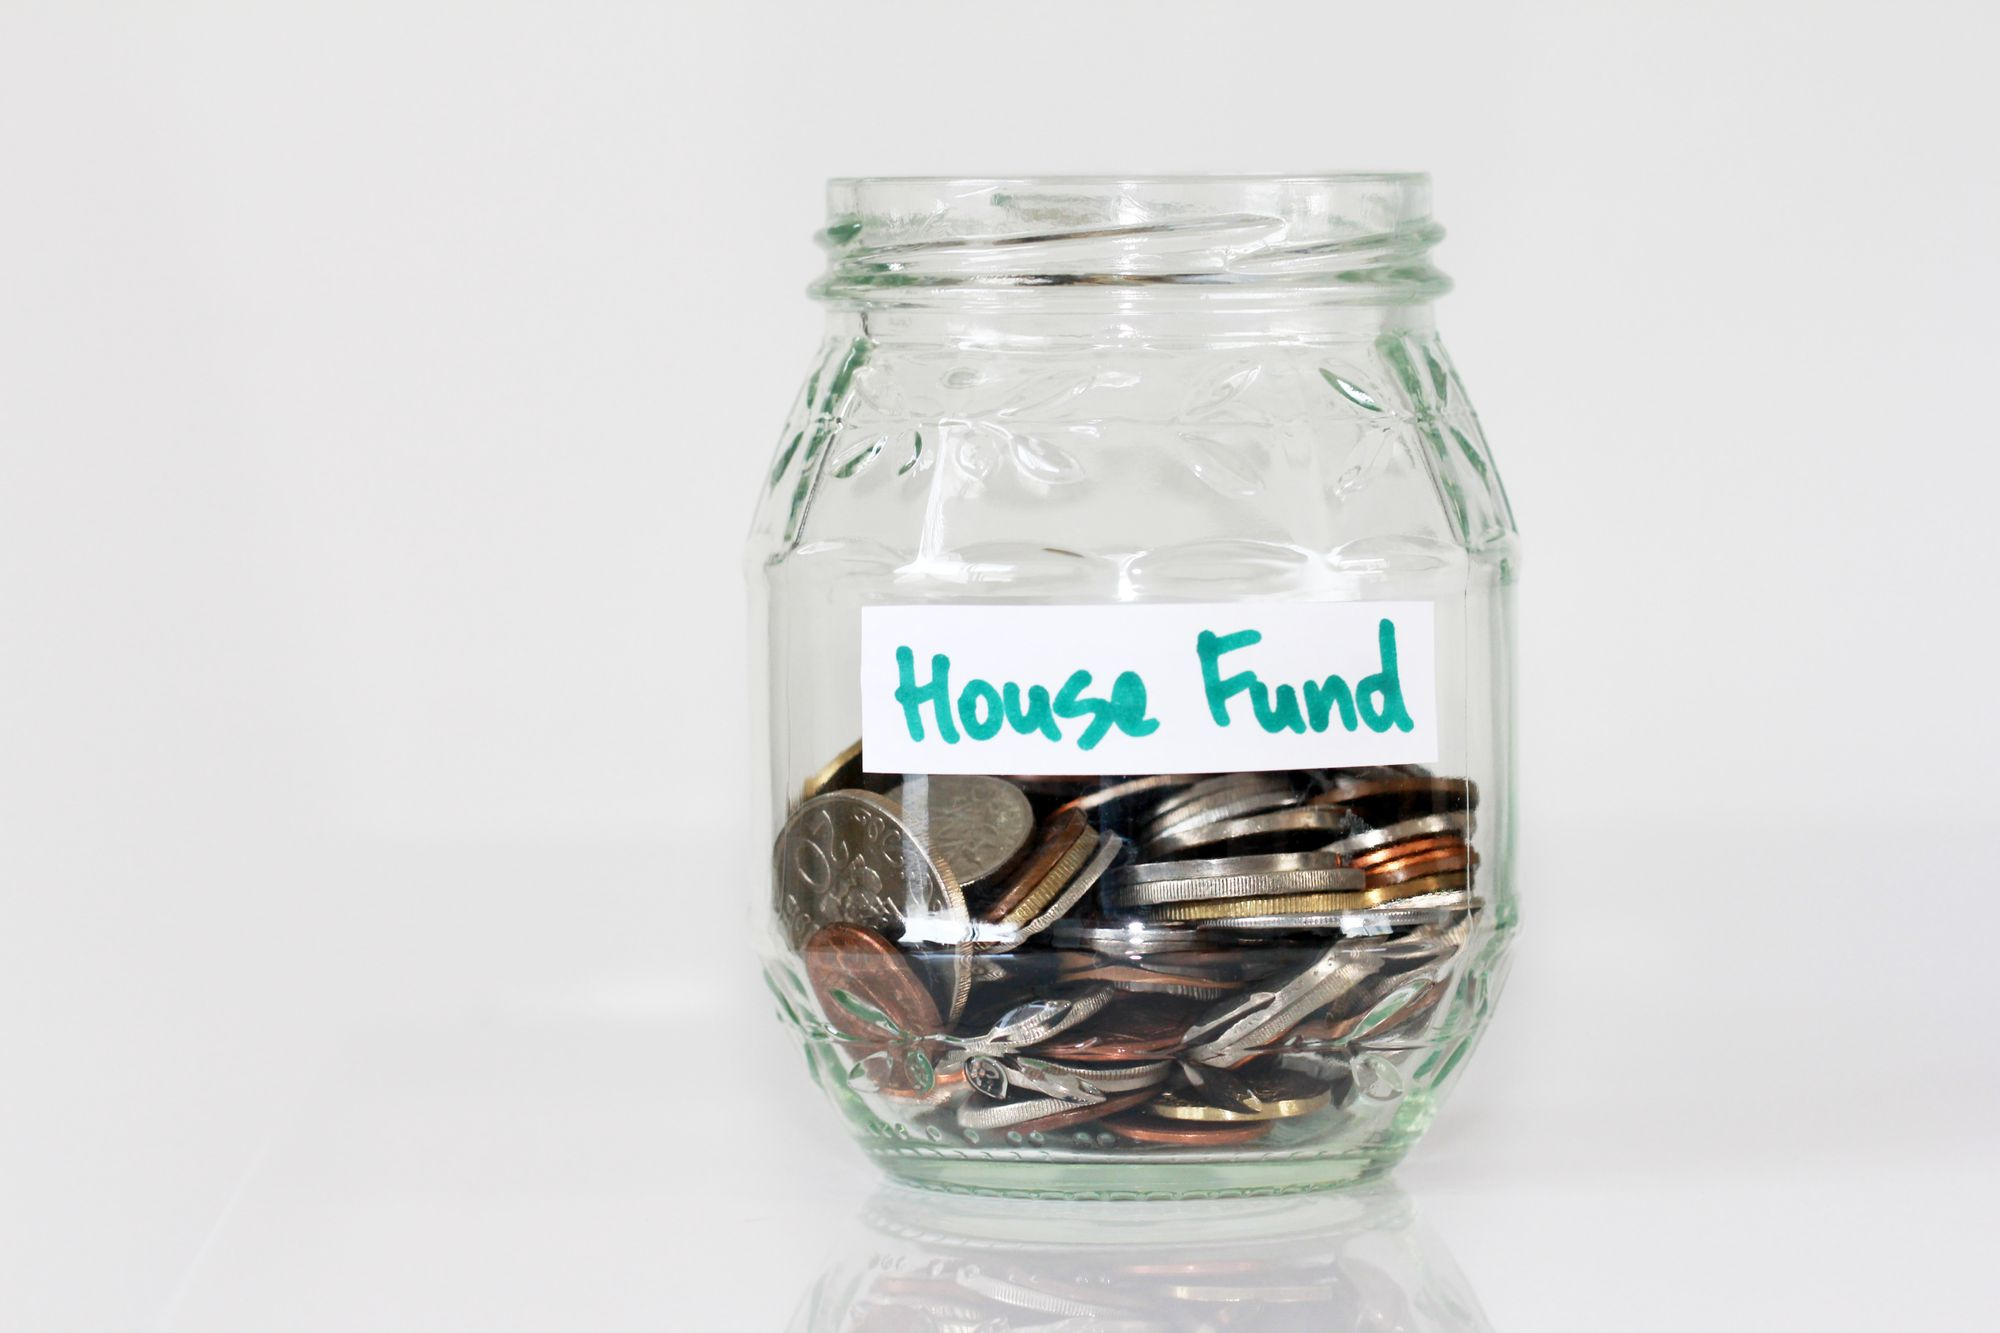 House fund money pot